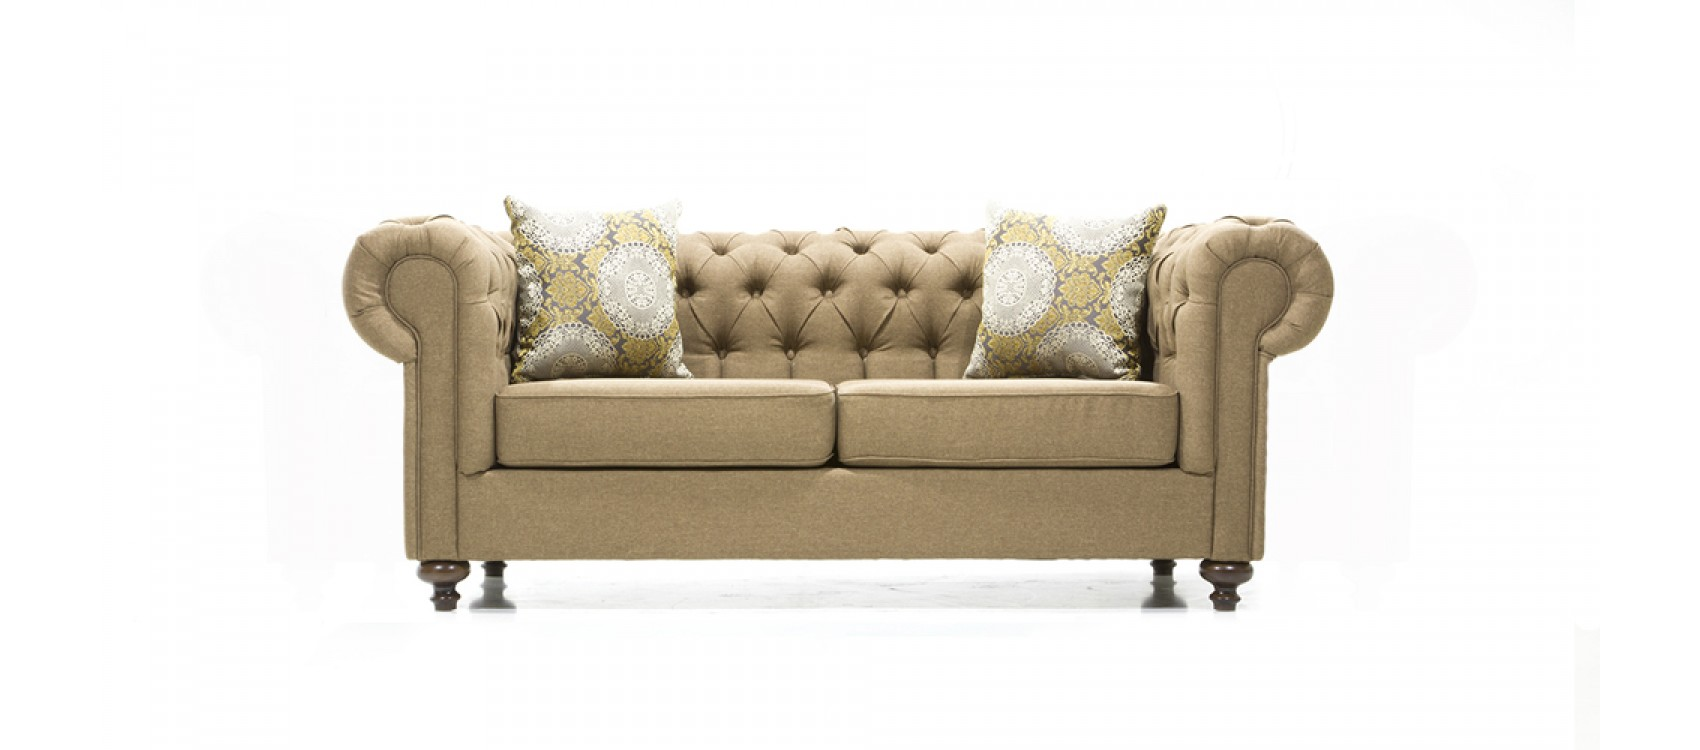 Sofa chester 2 seater - Sofas chester ...